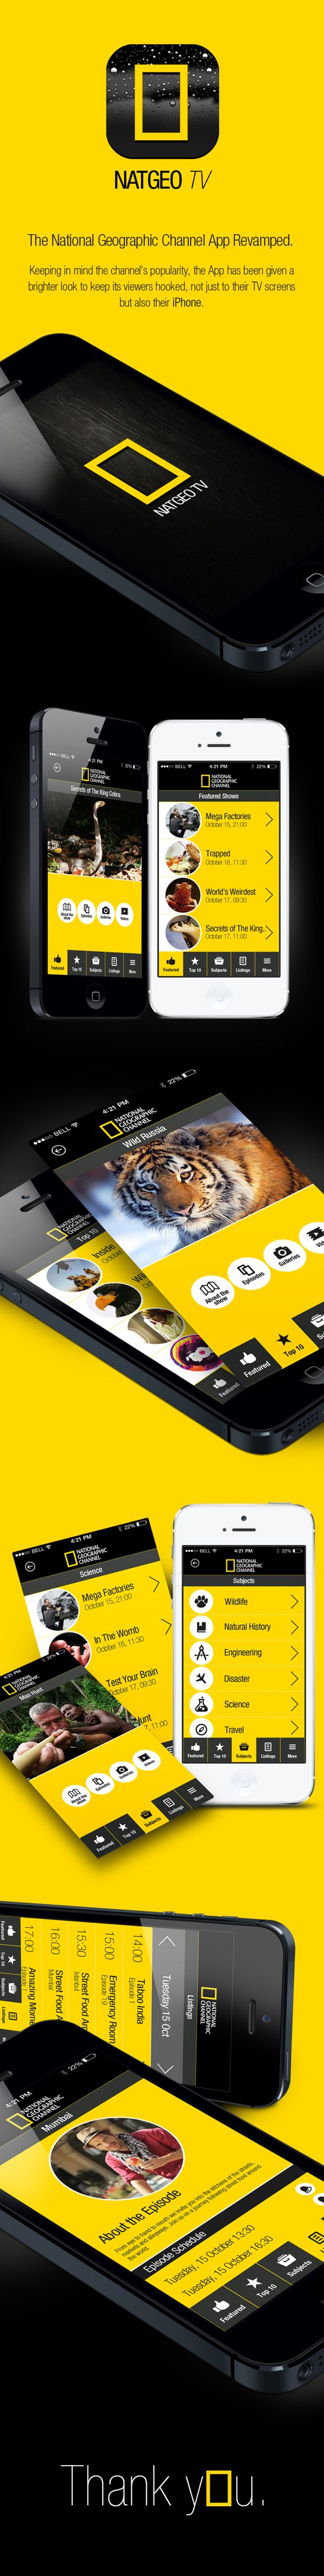 NATGEO TV App Revamped